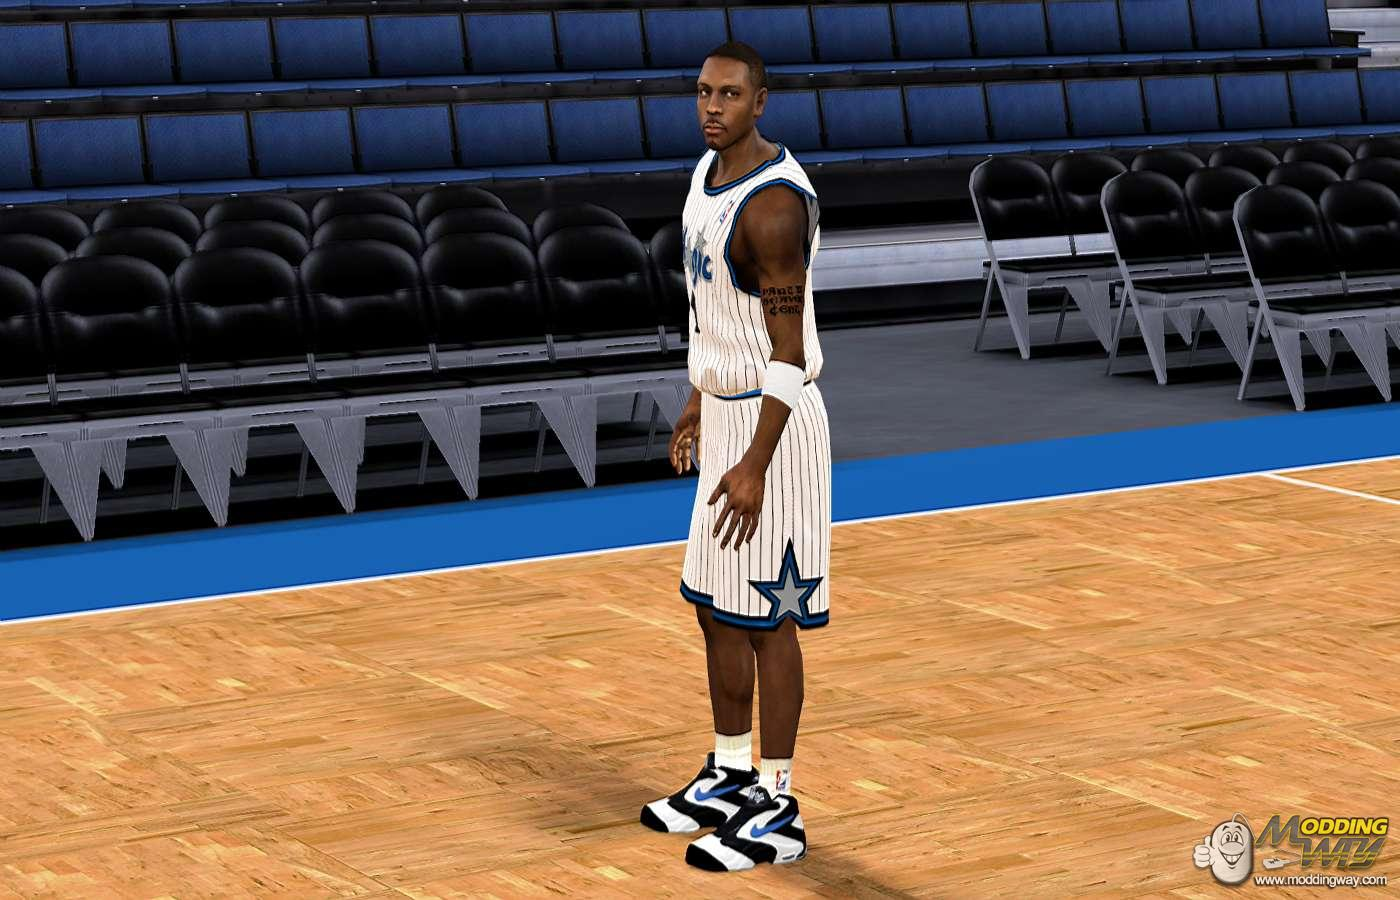 NBA 2K11 / Shoes / Nike Air Penny White Shoes - NBA 2K11